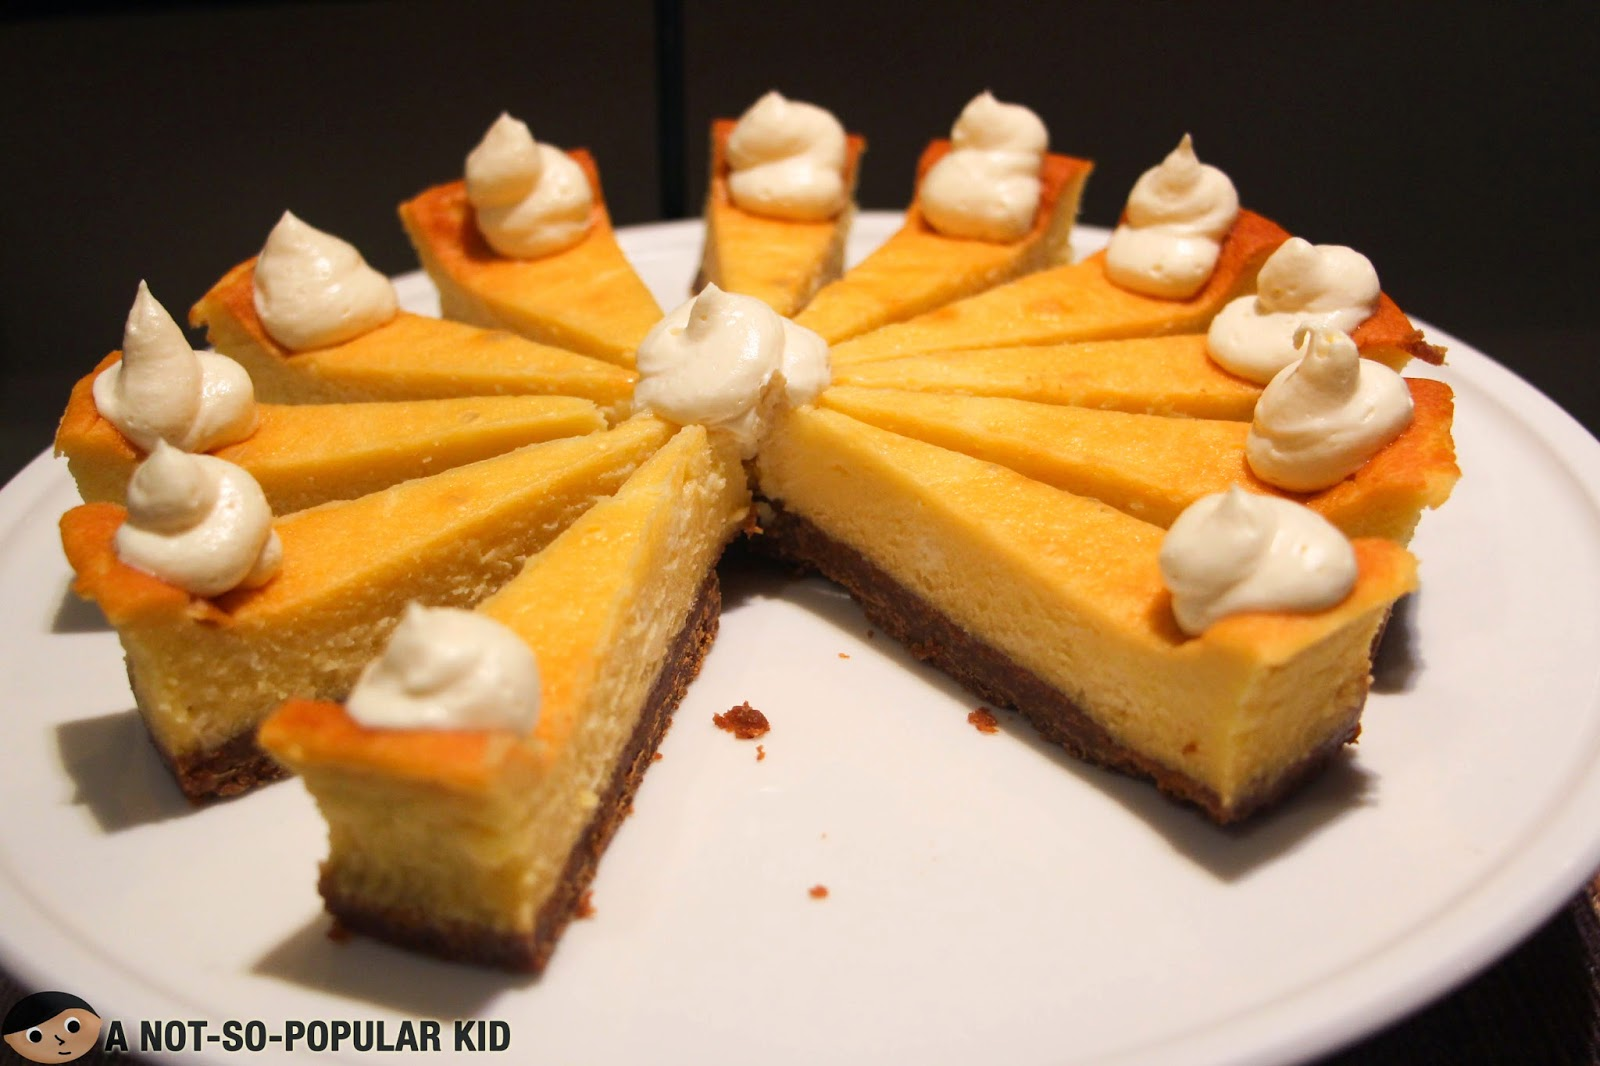 Special Cheesecake and Tart in between of Alba